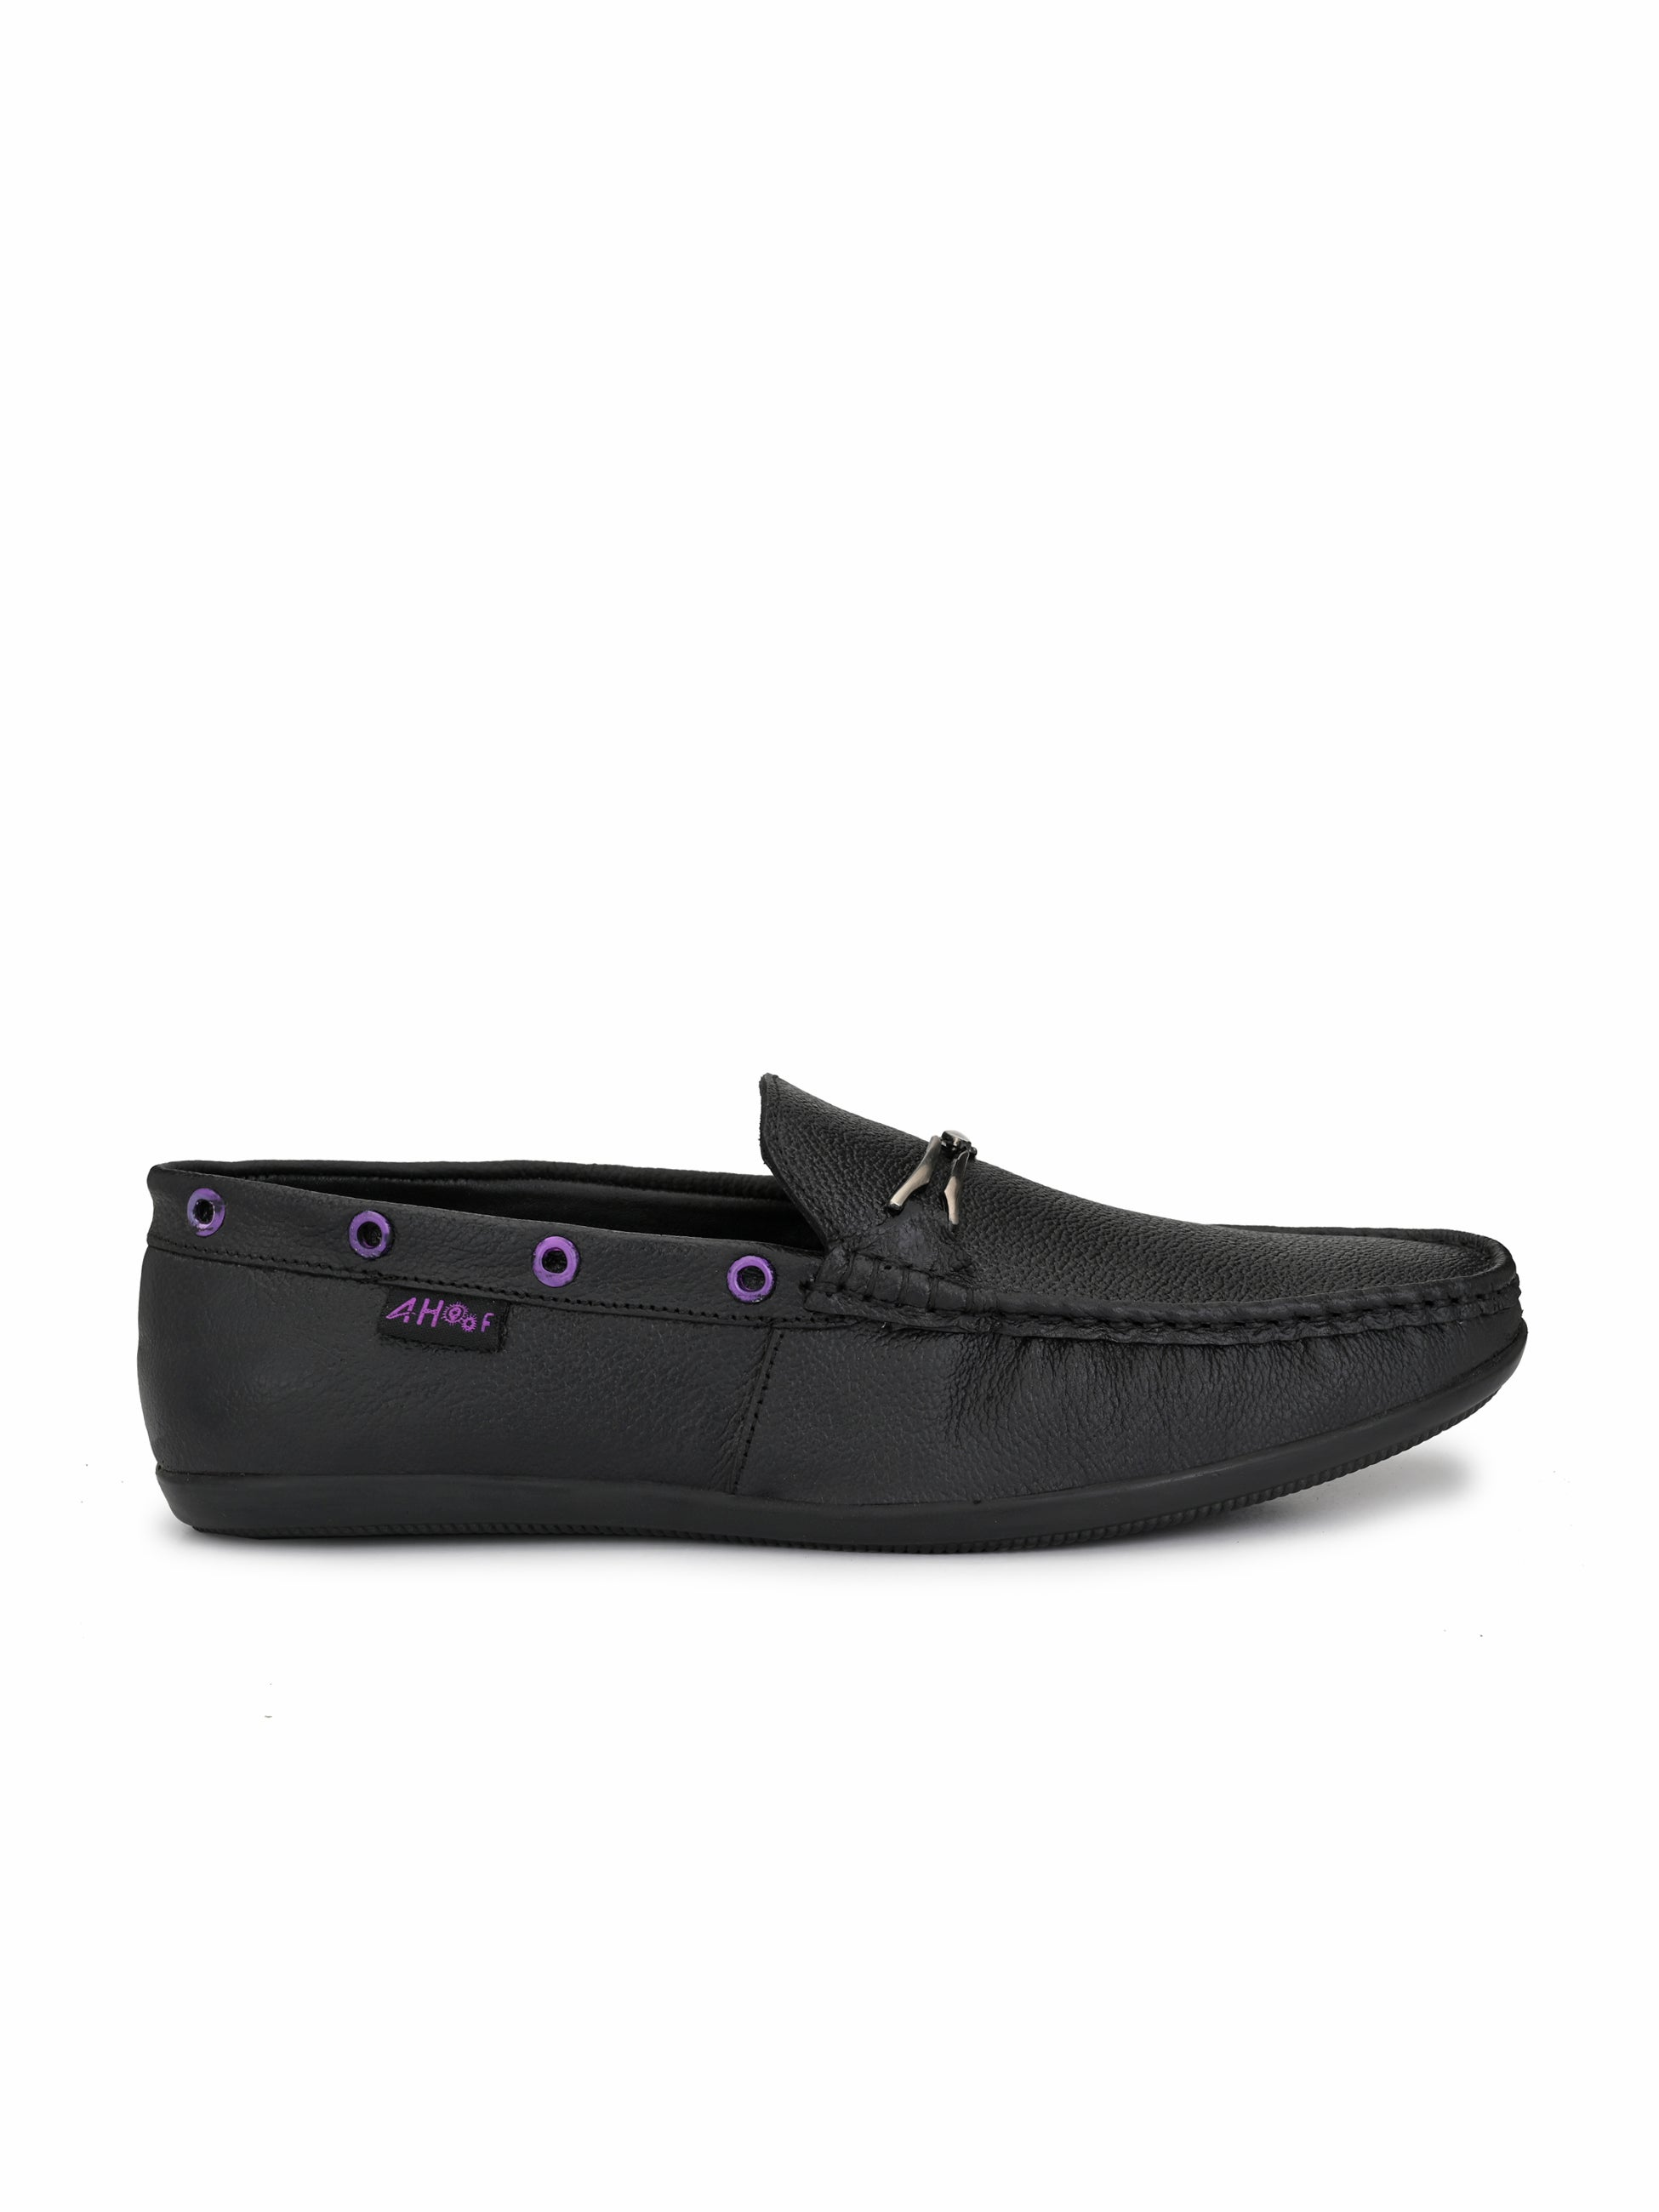 Cool Black Leather Loafers - shoegaro